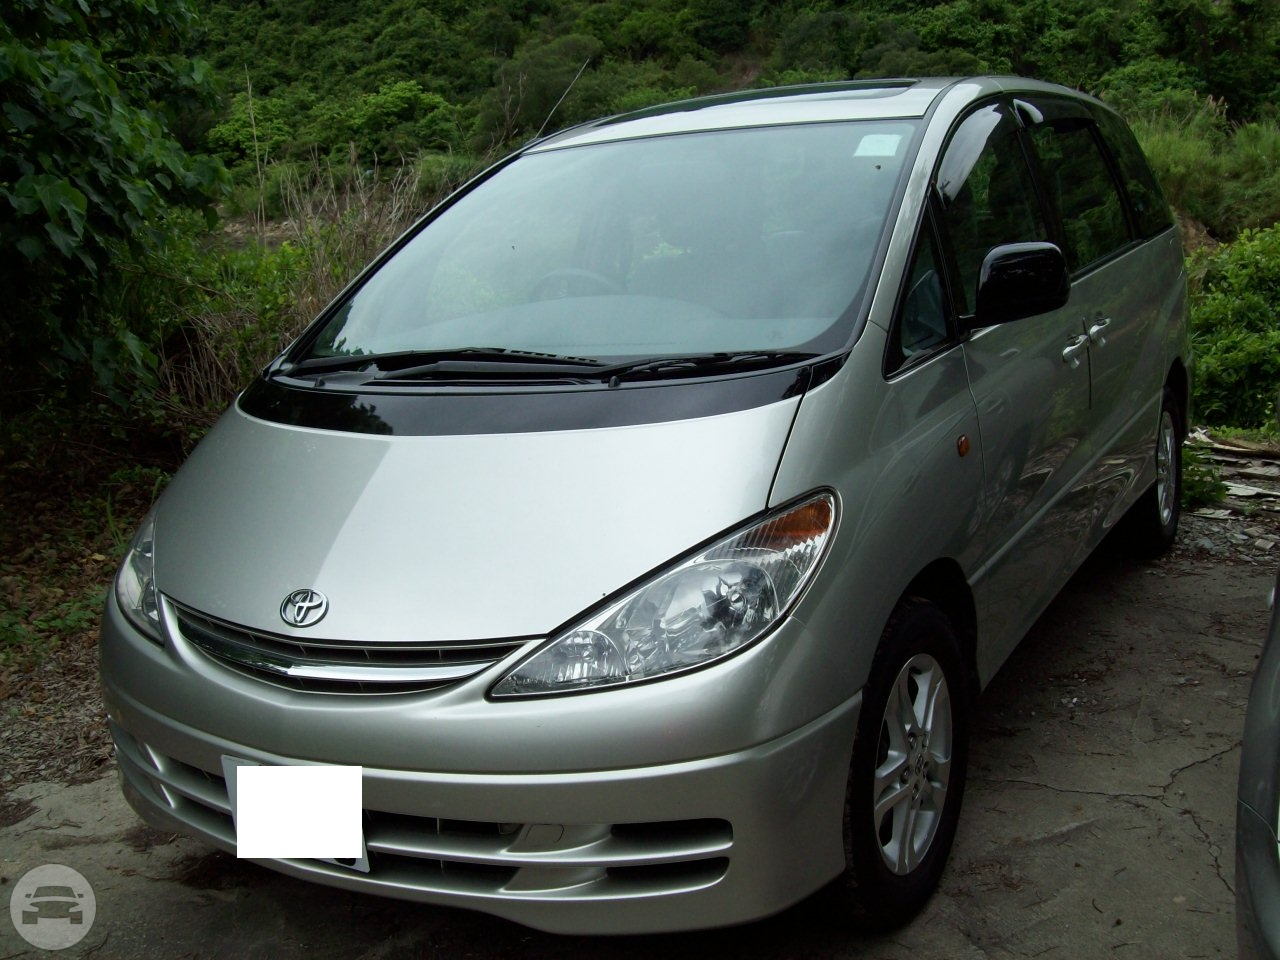 Toyota  Previa  2.4 Van / Kowloon, Hong Kong   / Hourly HKD 0.00